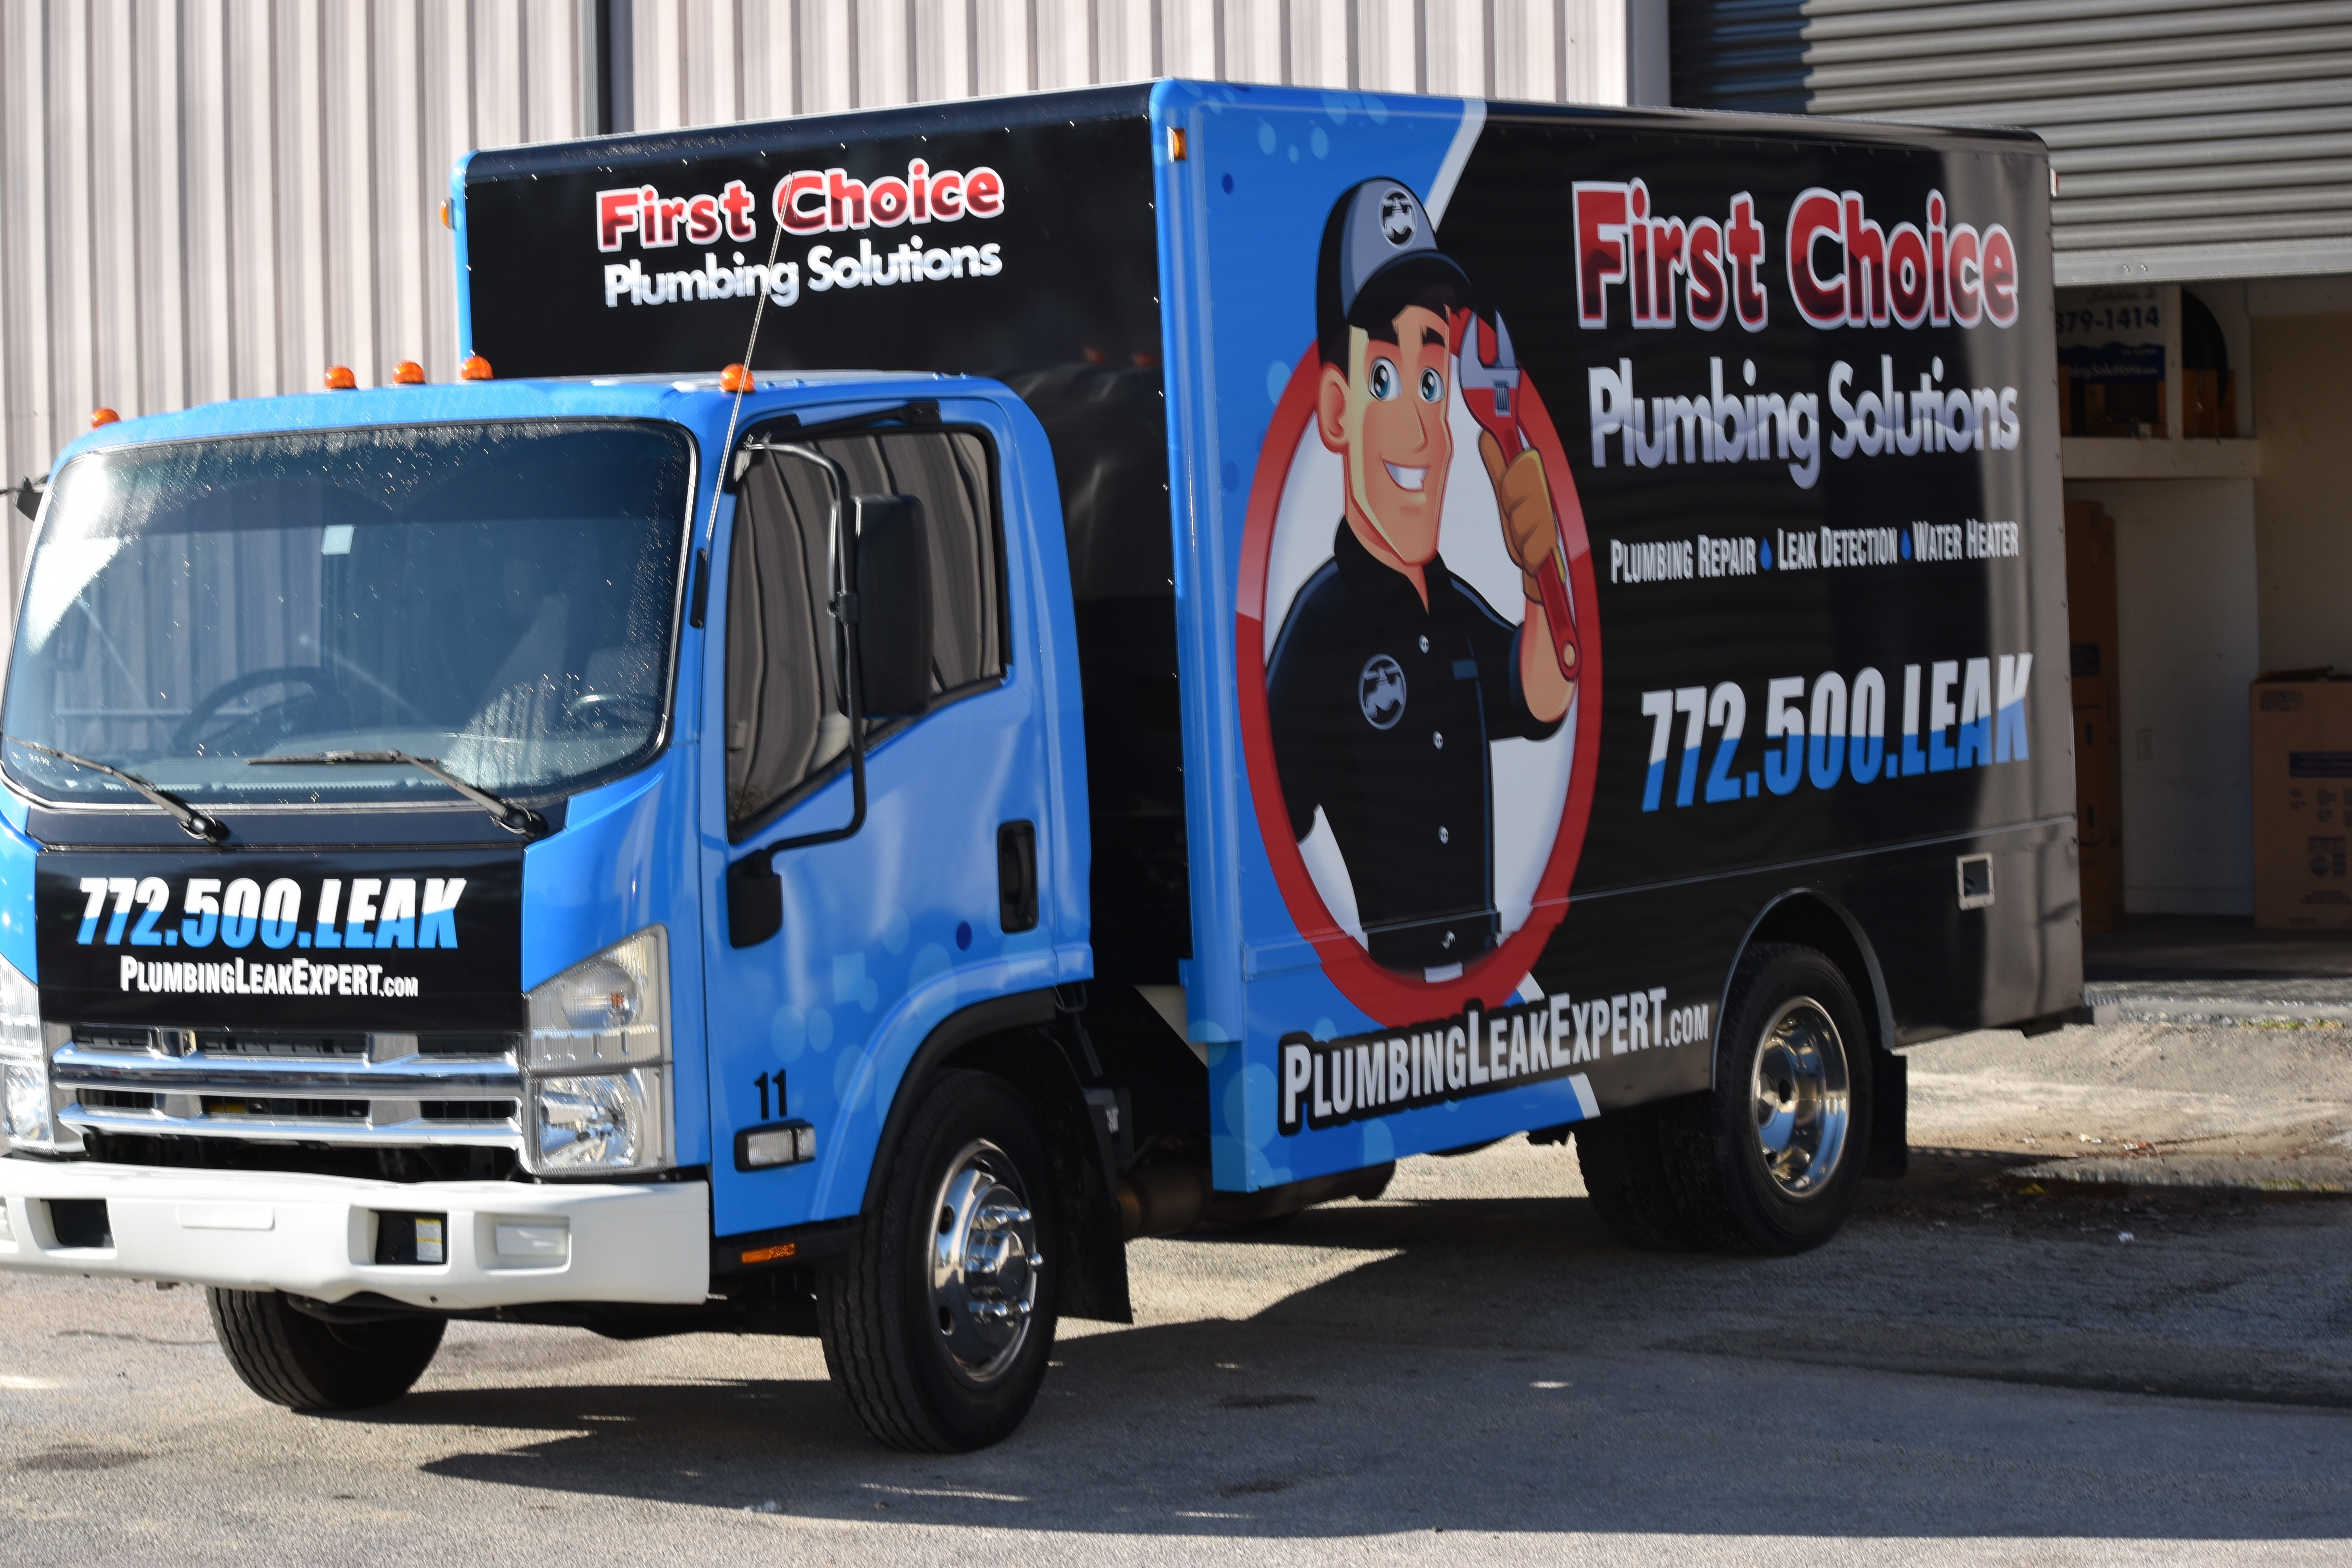 First Choice Plumbing Solutions image 1